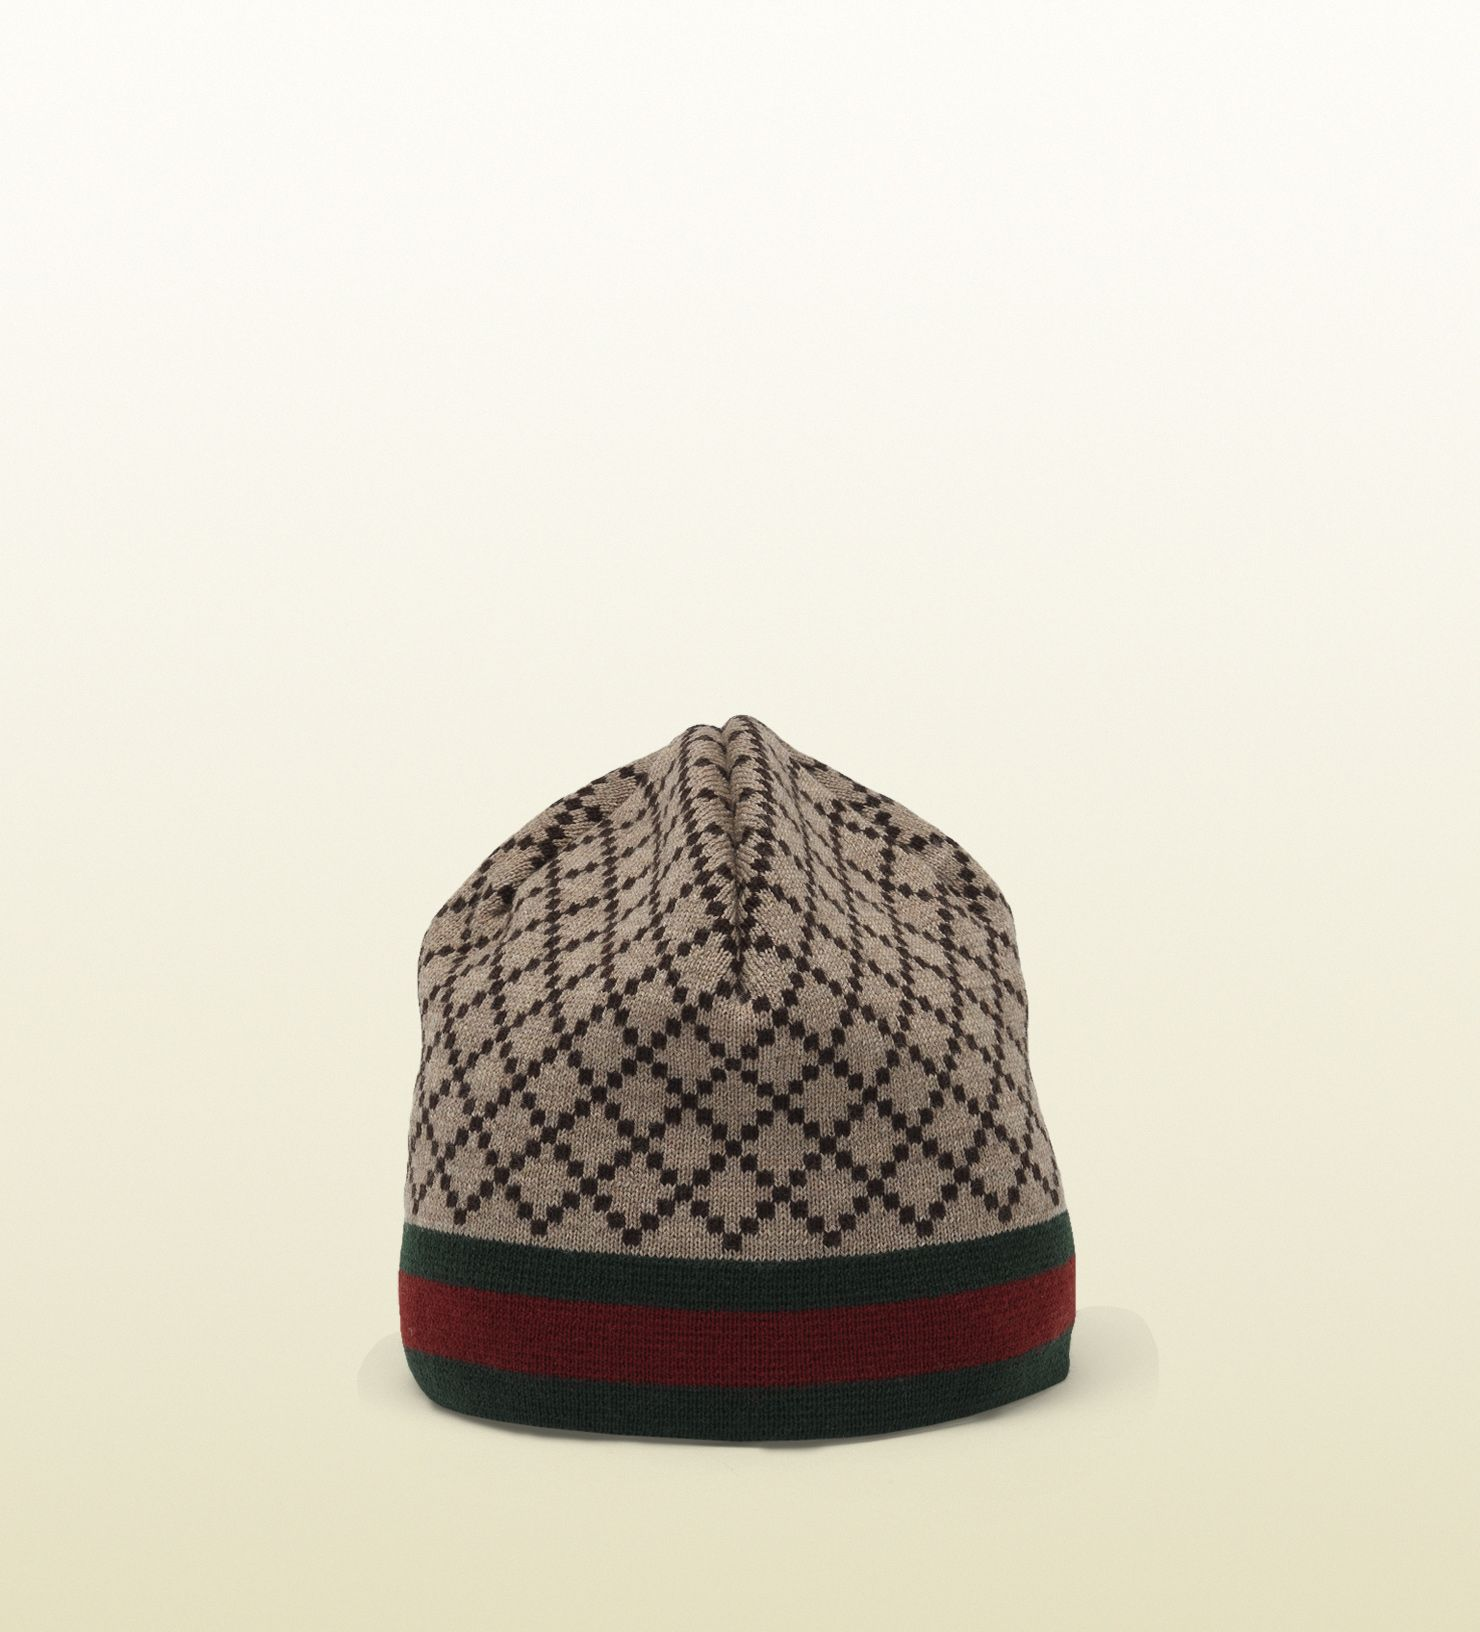 279177466 Gucci - diamante pattern knit hat with web detail 2952874G2062764 ...